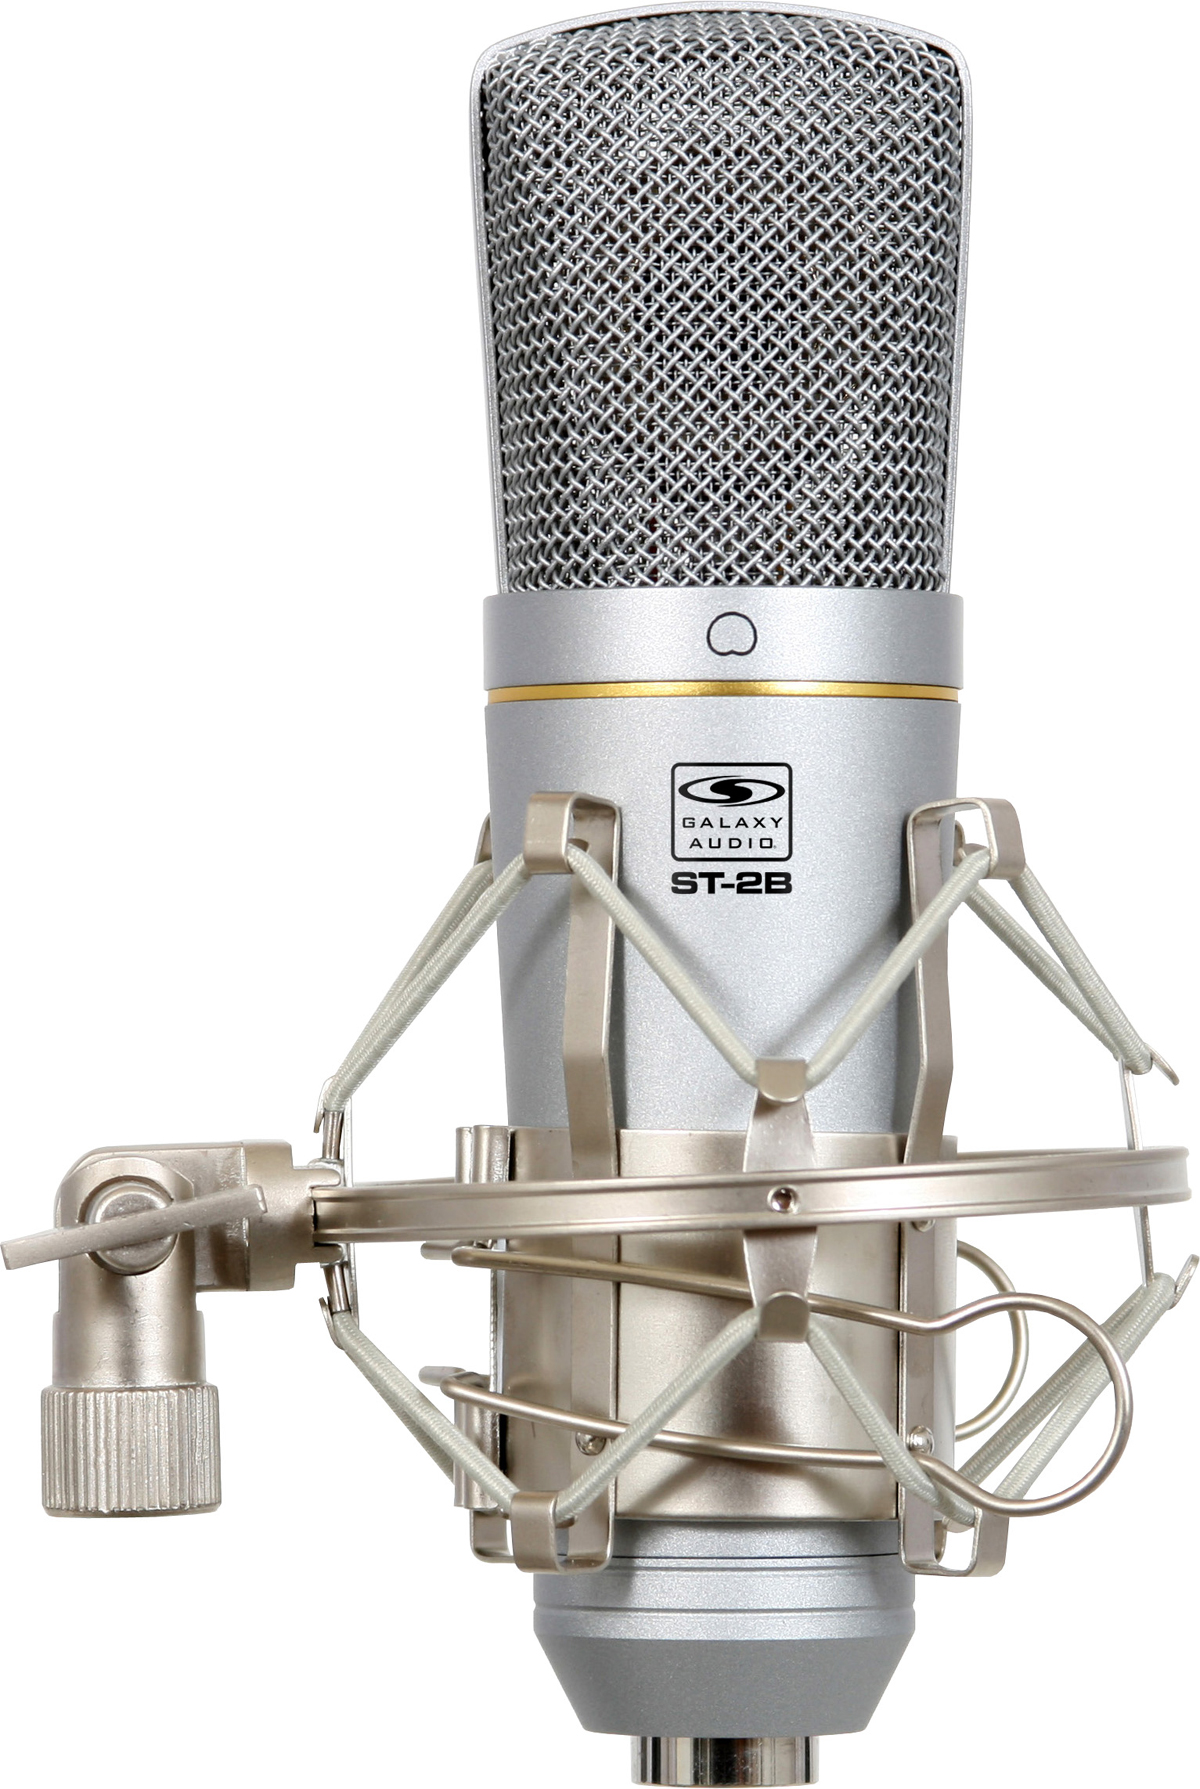 Galaxy Audio ST-2B Studio Condenser Microphones with USB Output